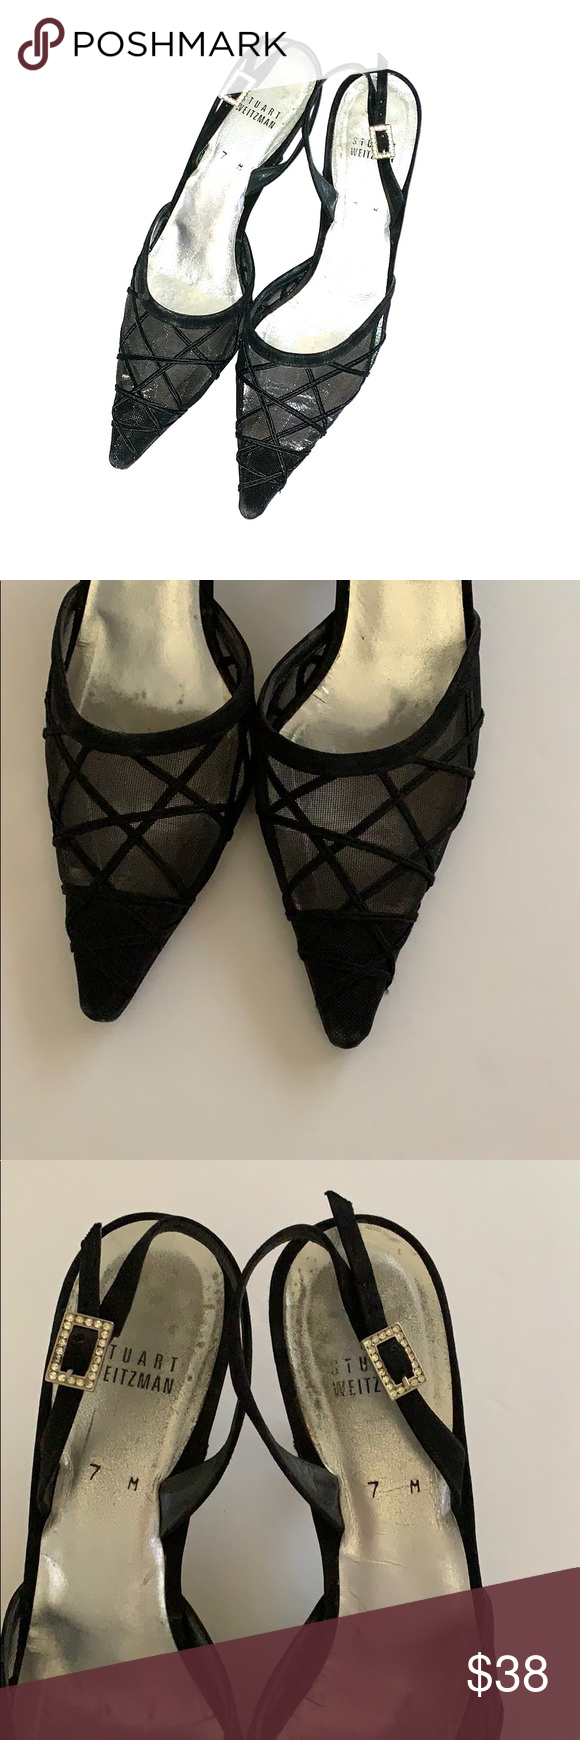 b68756c0f11 Stuart Weitzman Slingback Heels Slingback with mesh front and rhinestone  hardware. Great for holiday parties. Sleek and elegant. In good used  condition.